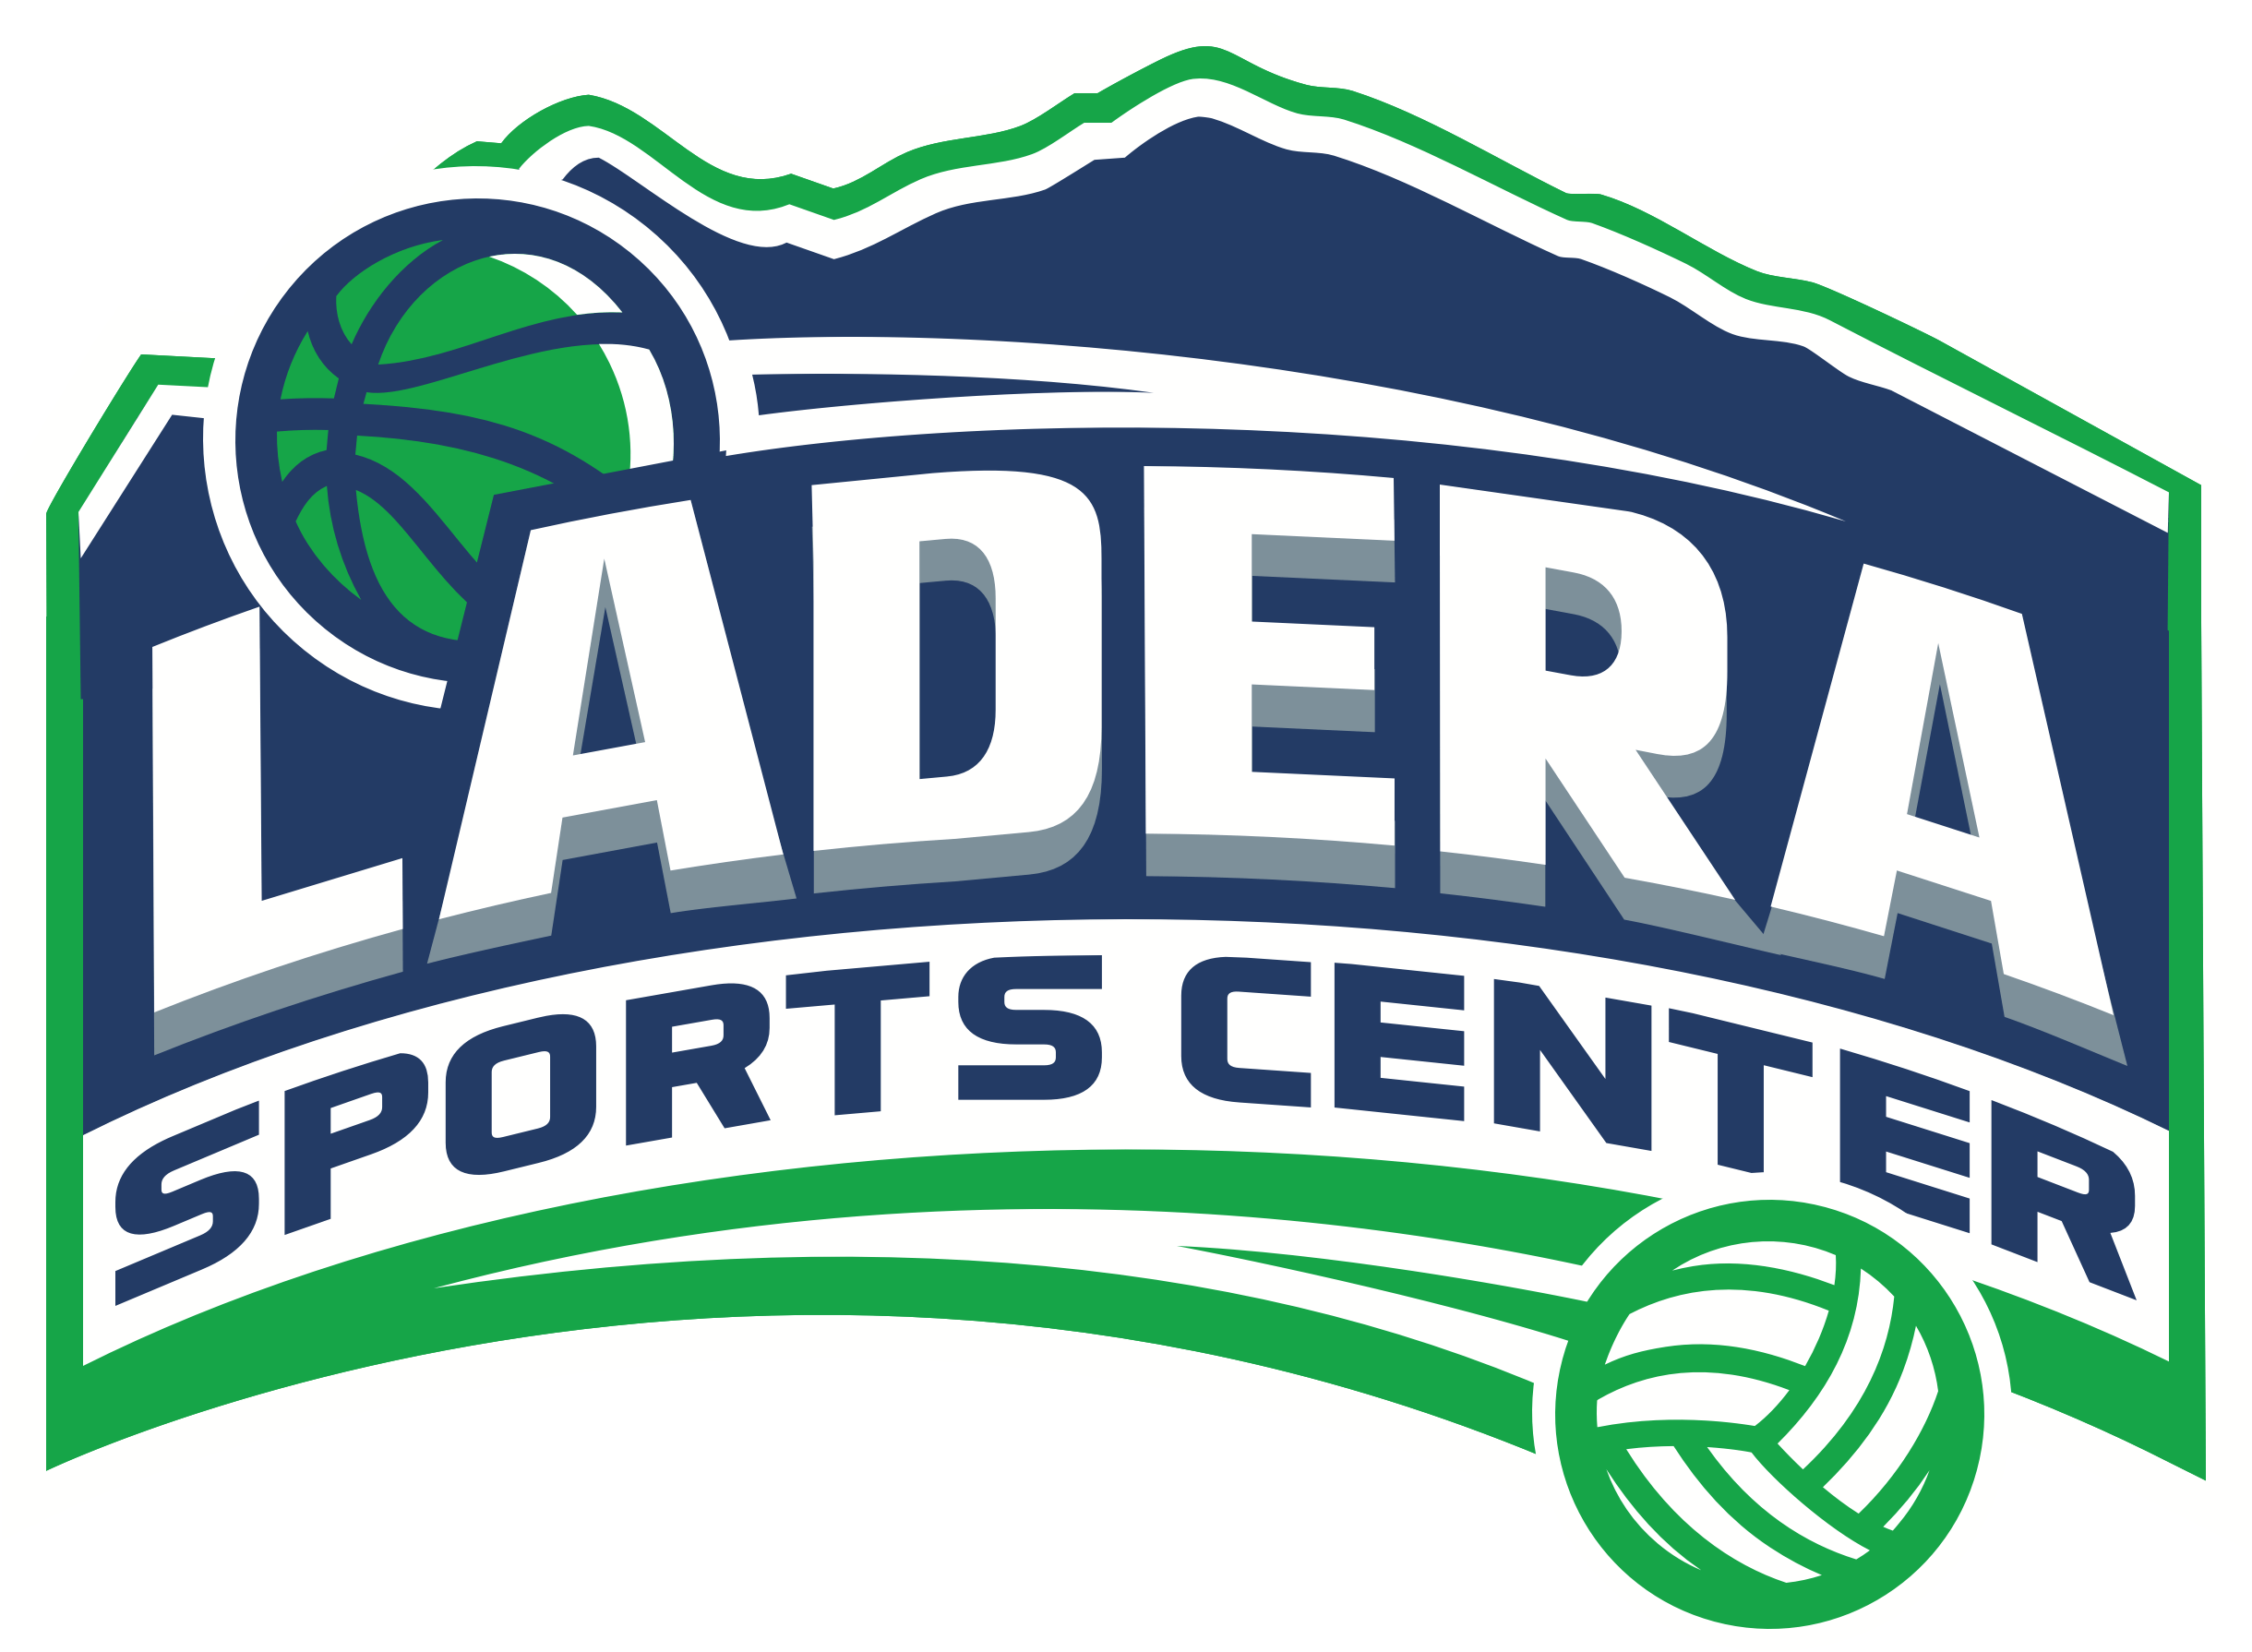 Ladera-Sports-Center-Website-Design-Logo